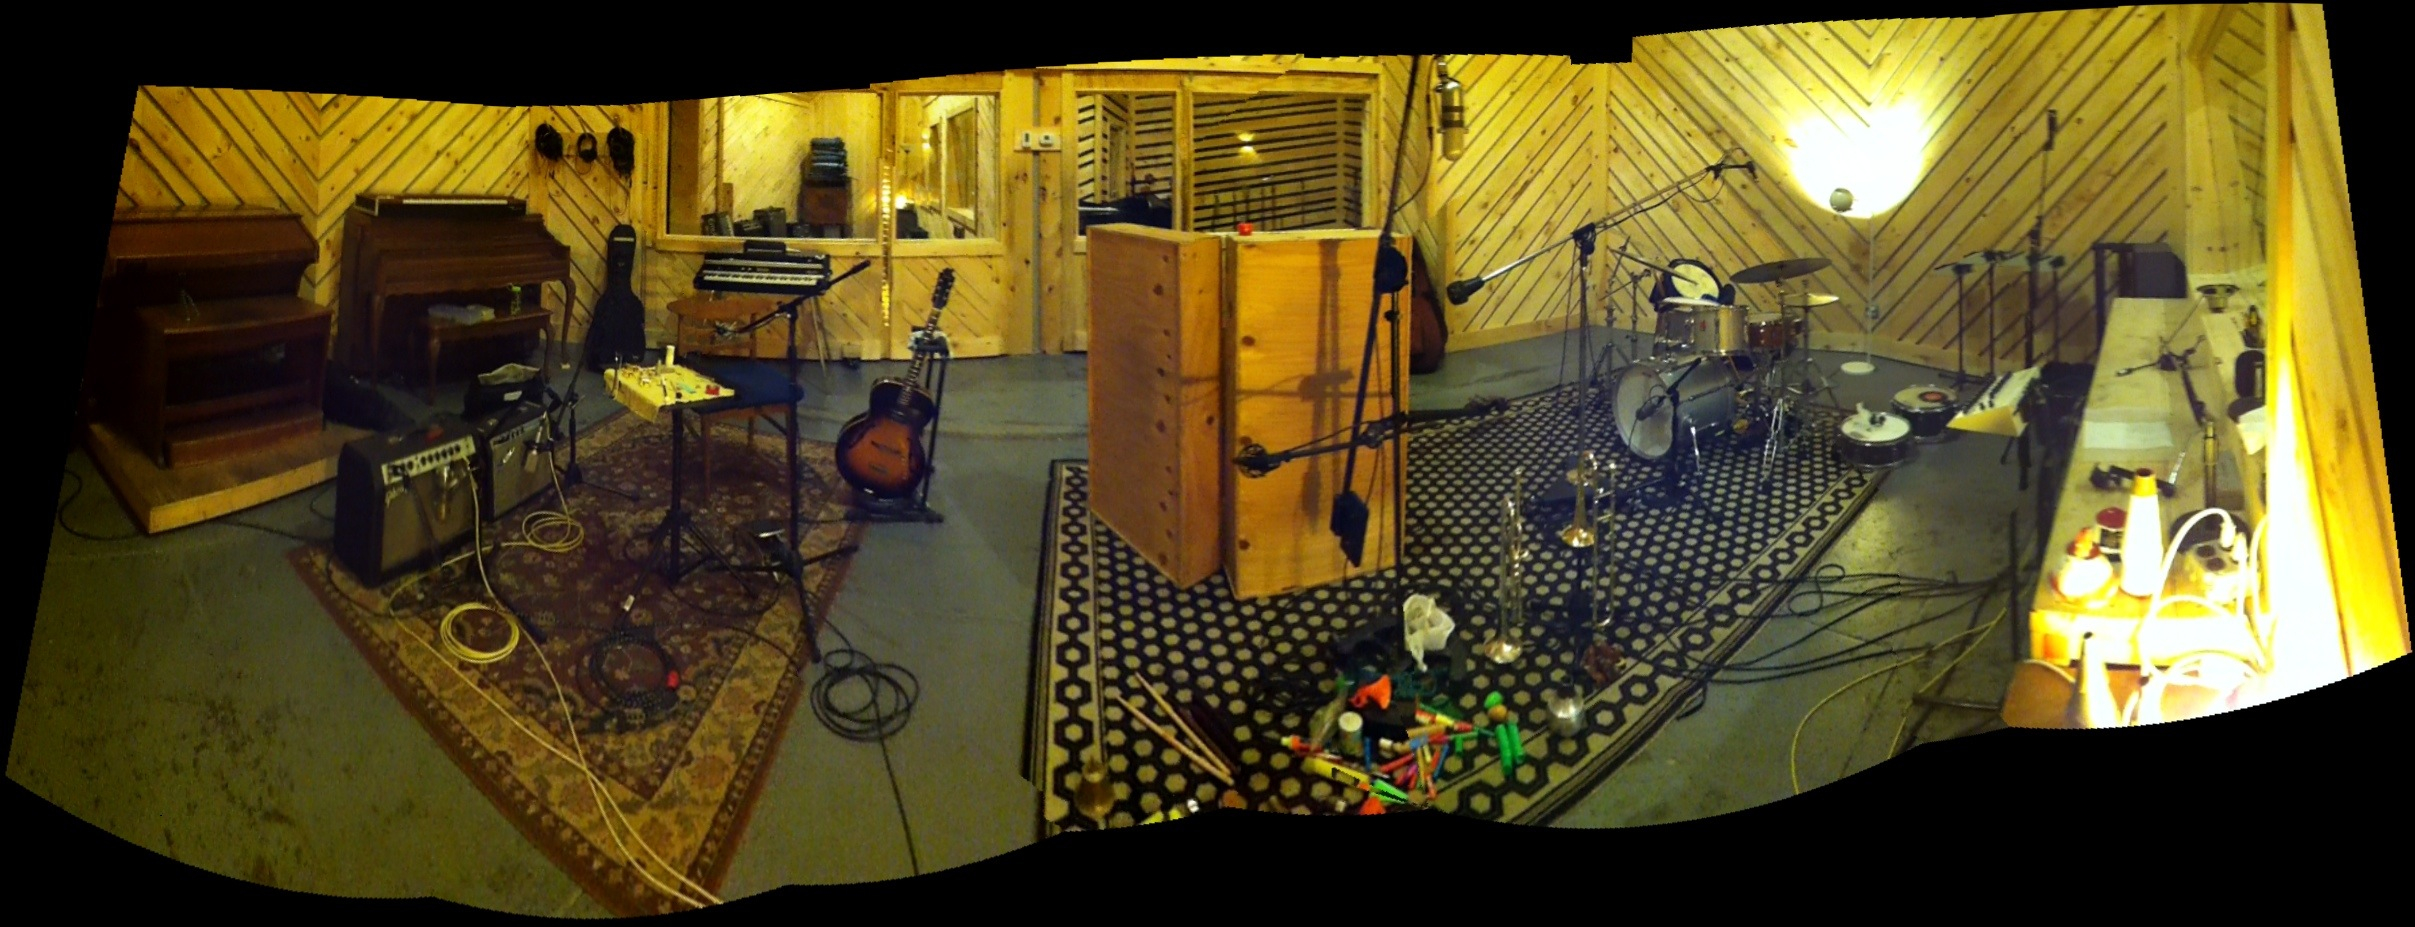 From the recording session at The Bunker Studio.